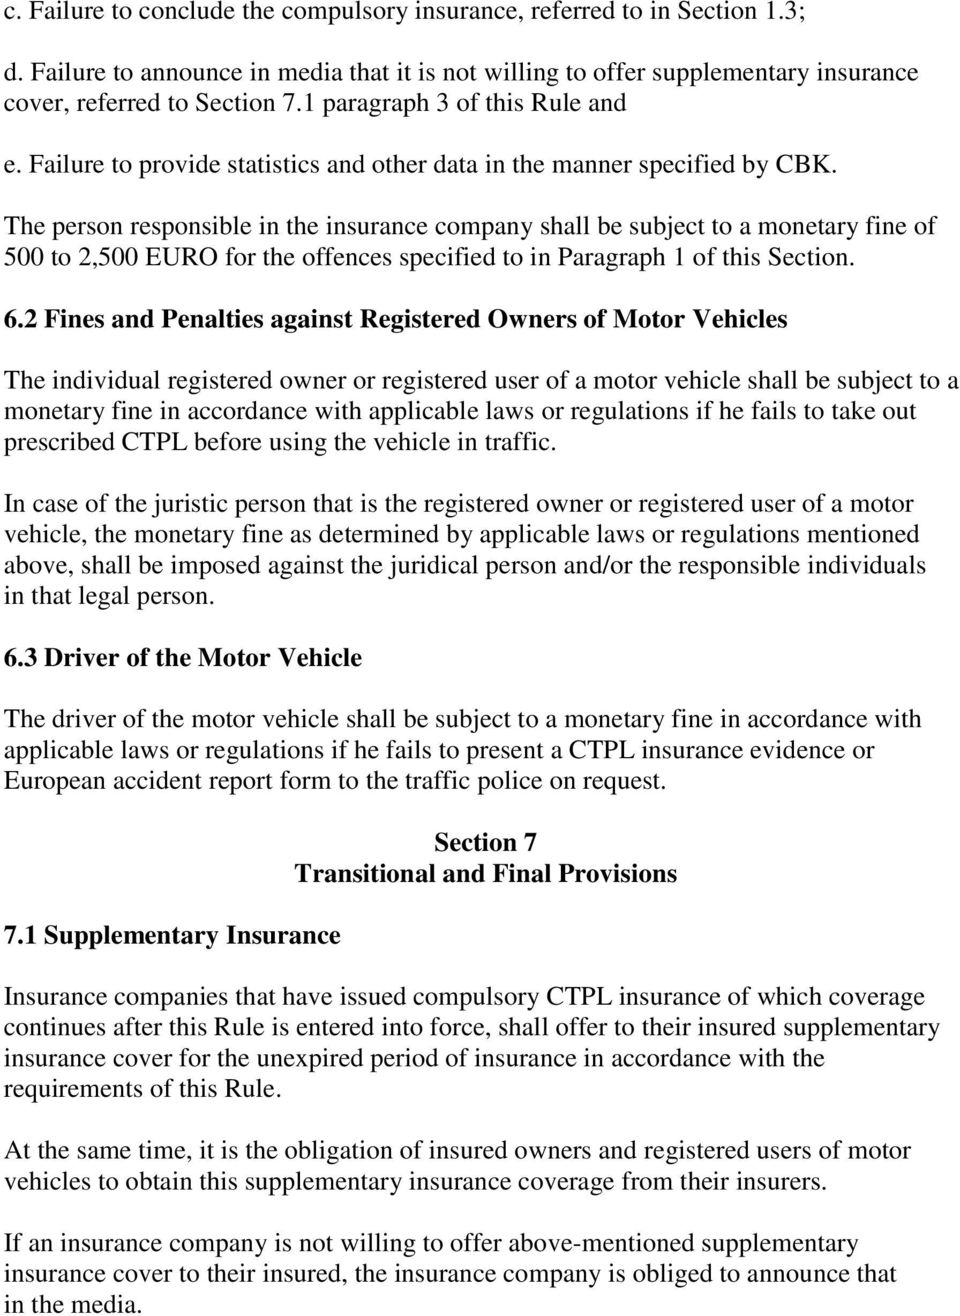 The person responsible in the insurance company shall be subject to a monetary fine of 500 to 2,500 EURO for the offences specified to in Paragraph 1 of this Section. 6.